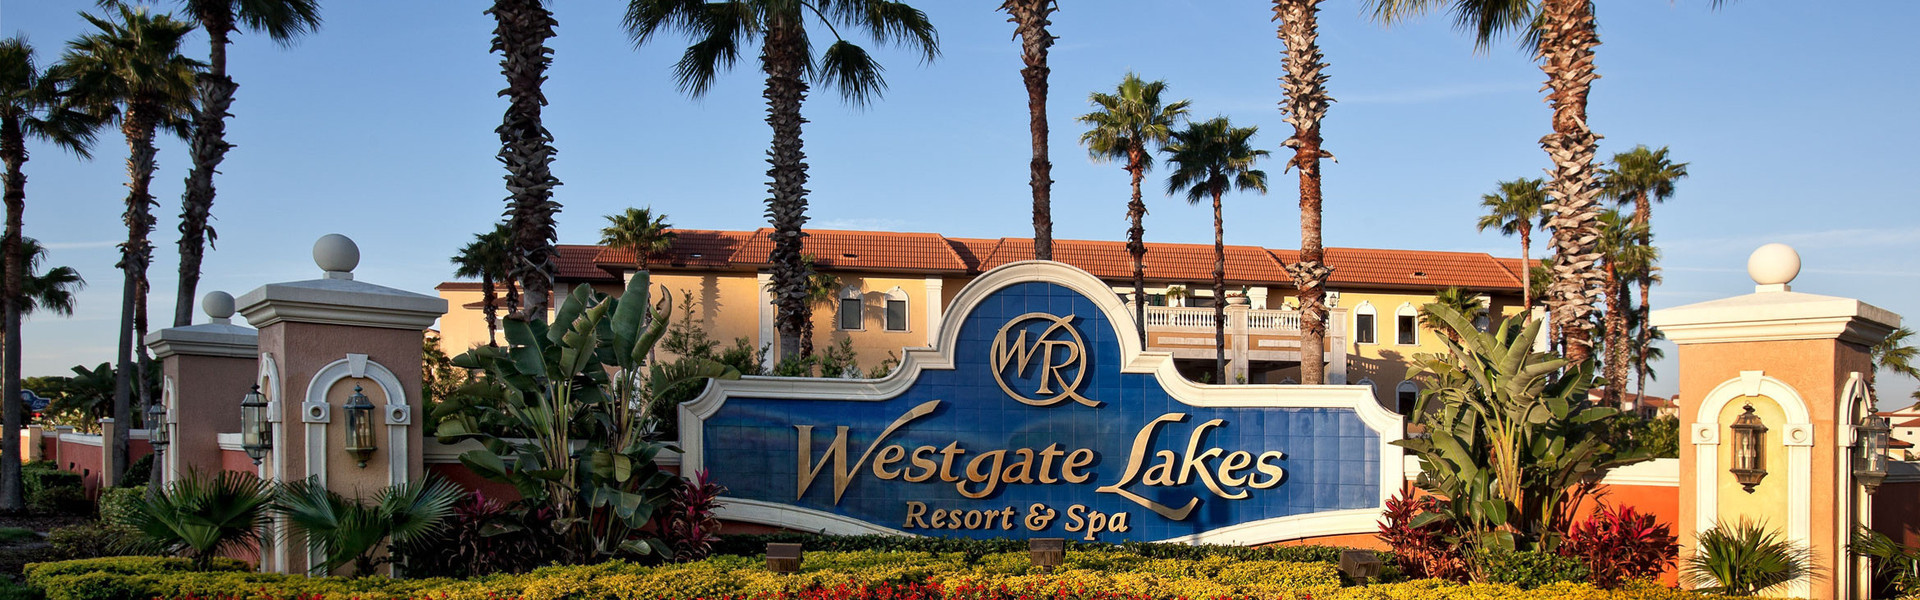 Photos of Orlando Florida Resort Entrance | Pictures of Westgate Lakes Resort & Spa